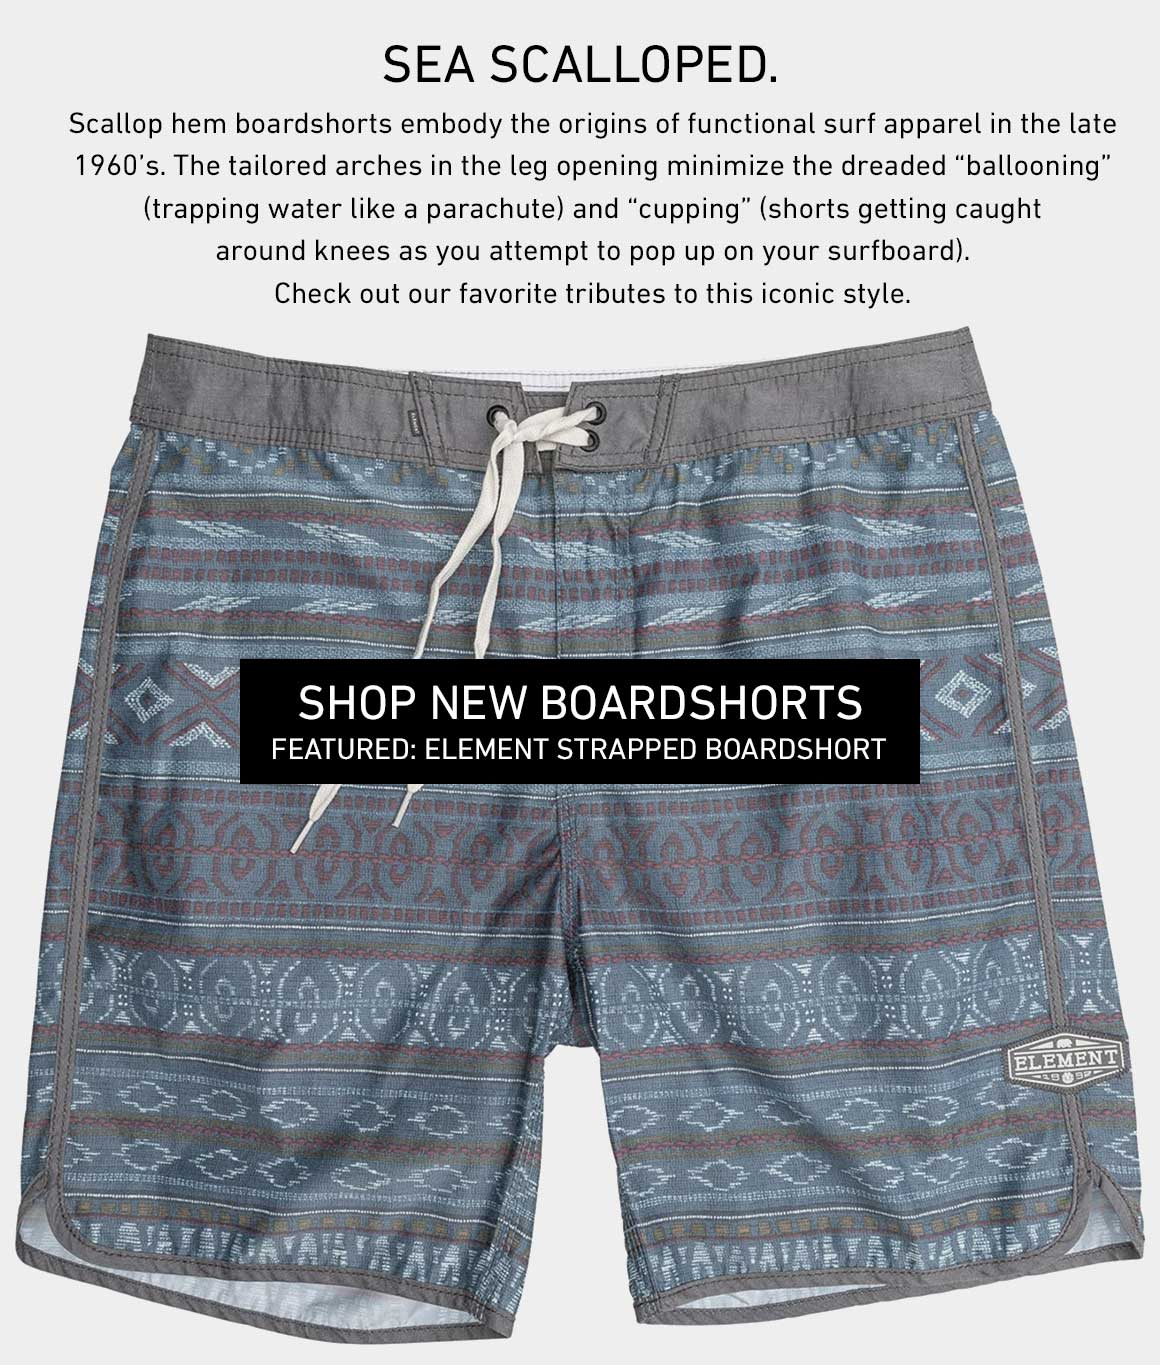 Sea Scalloped: Shop New Boardshorts